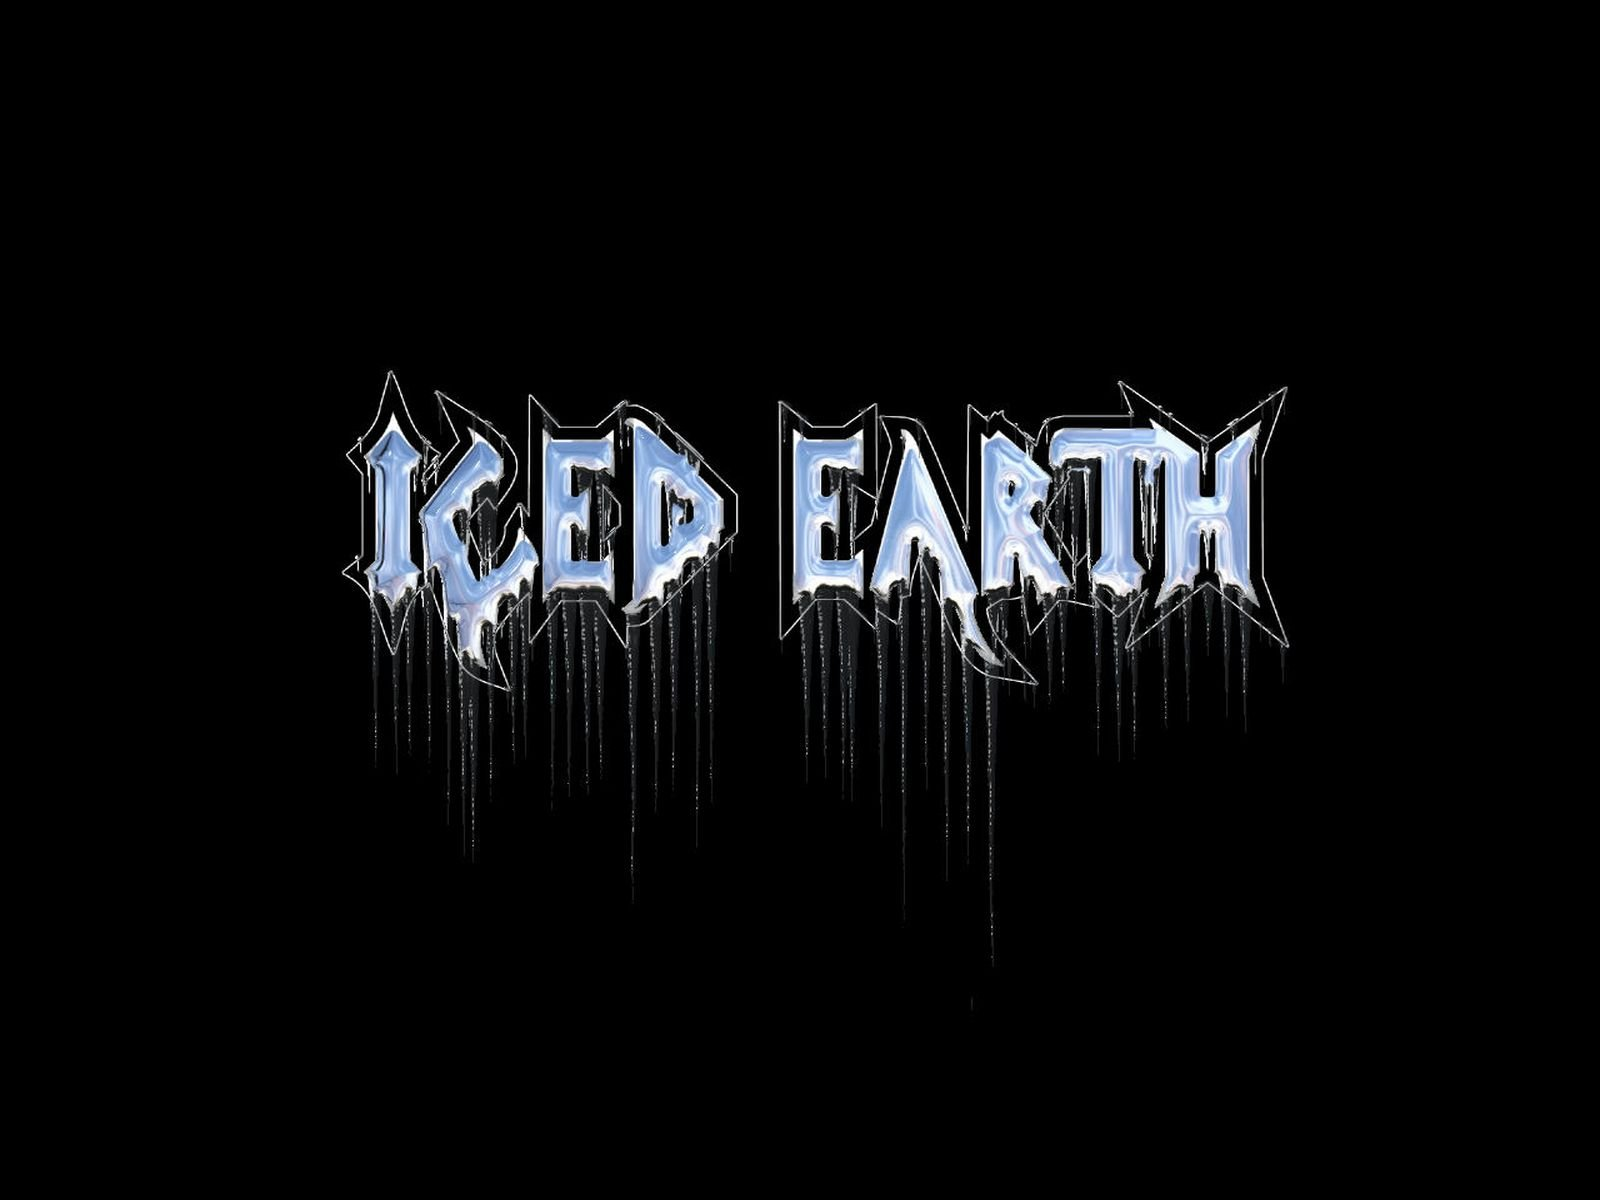 iced earth iphone 5 wallpaper collections